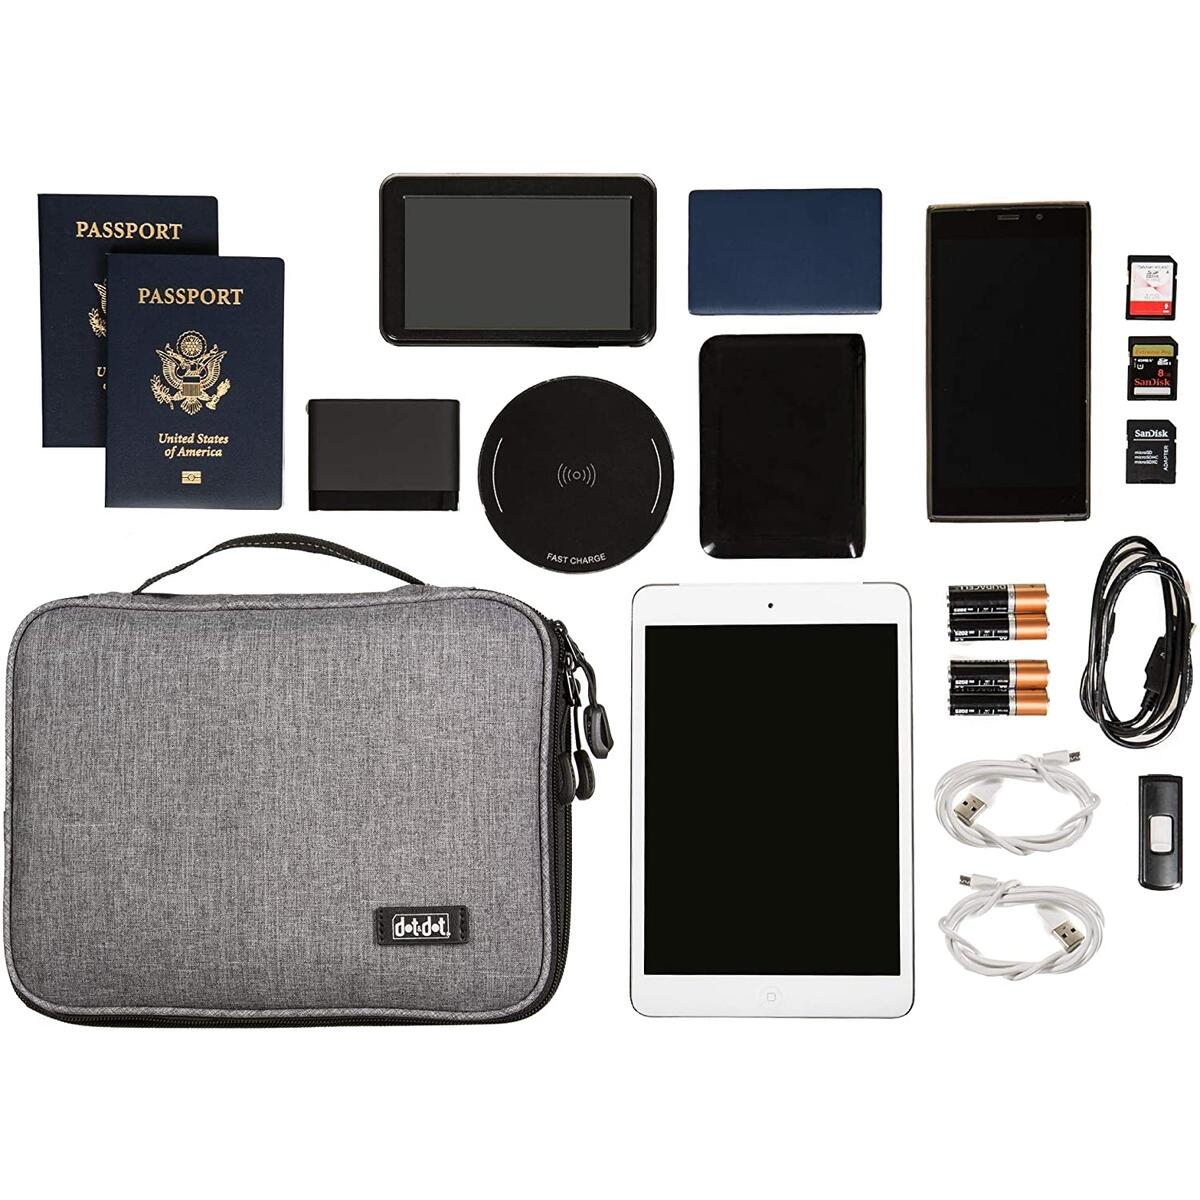 Dot&Dot Travel Tech Organizer - Electronic Cord Organizer Travel Carrying Case for Charger, Cable, Cell Phone, Gadget, Computer Accessories, Electronics - Portable Charge Cord Management Pouch